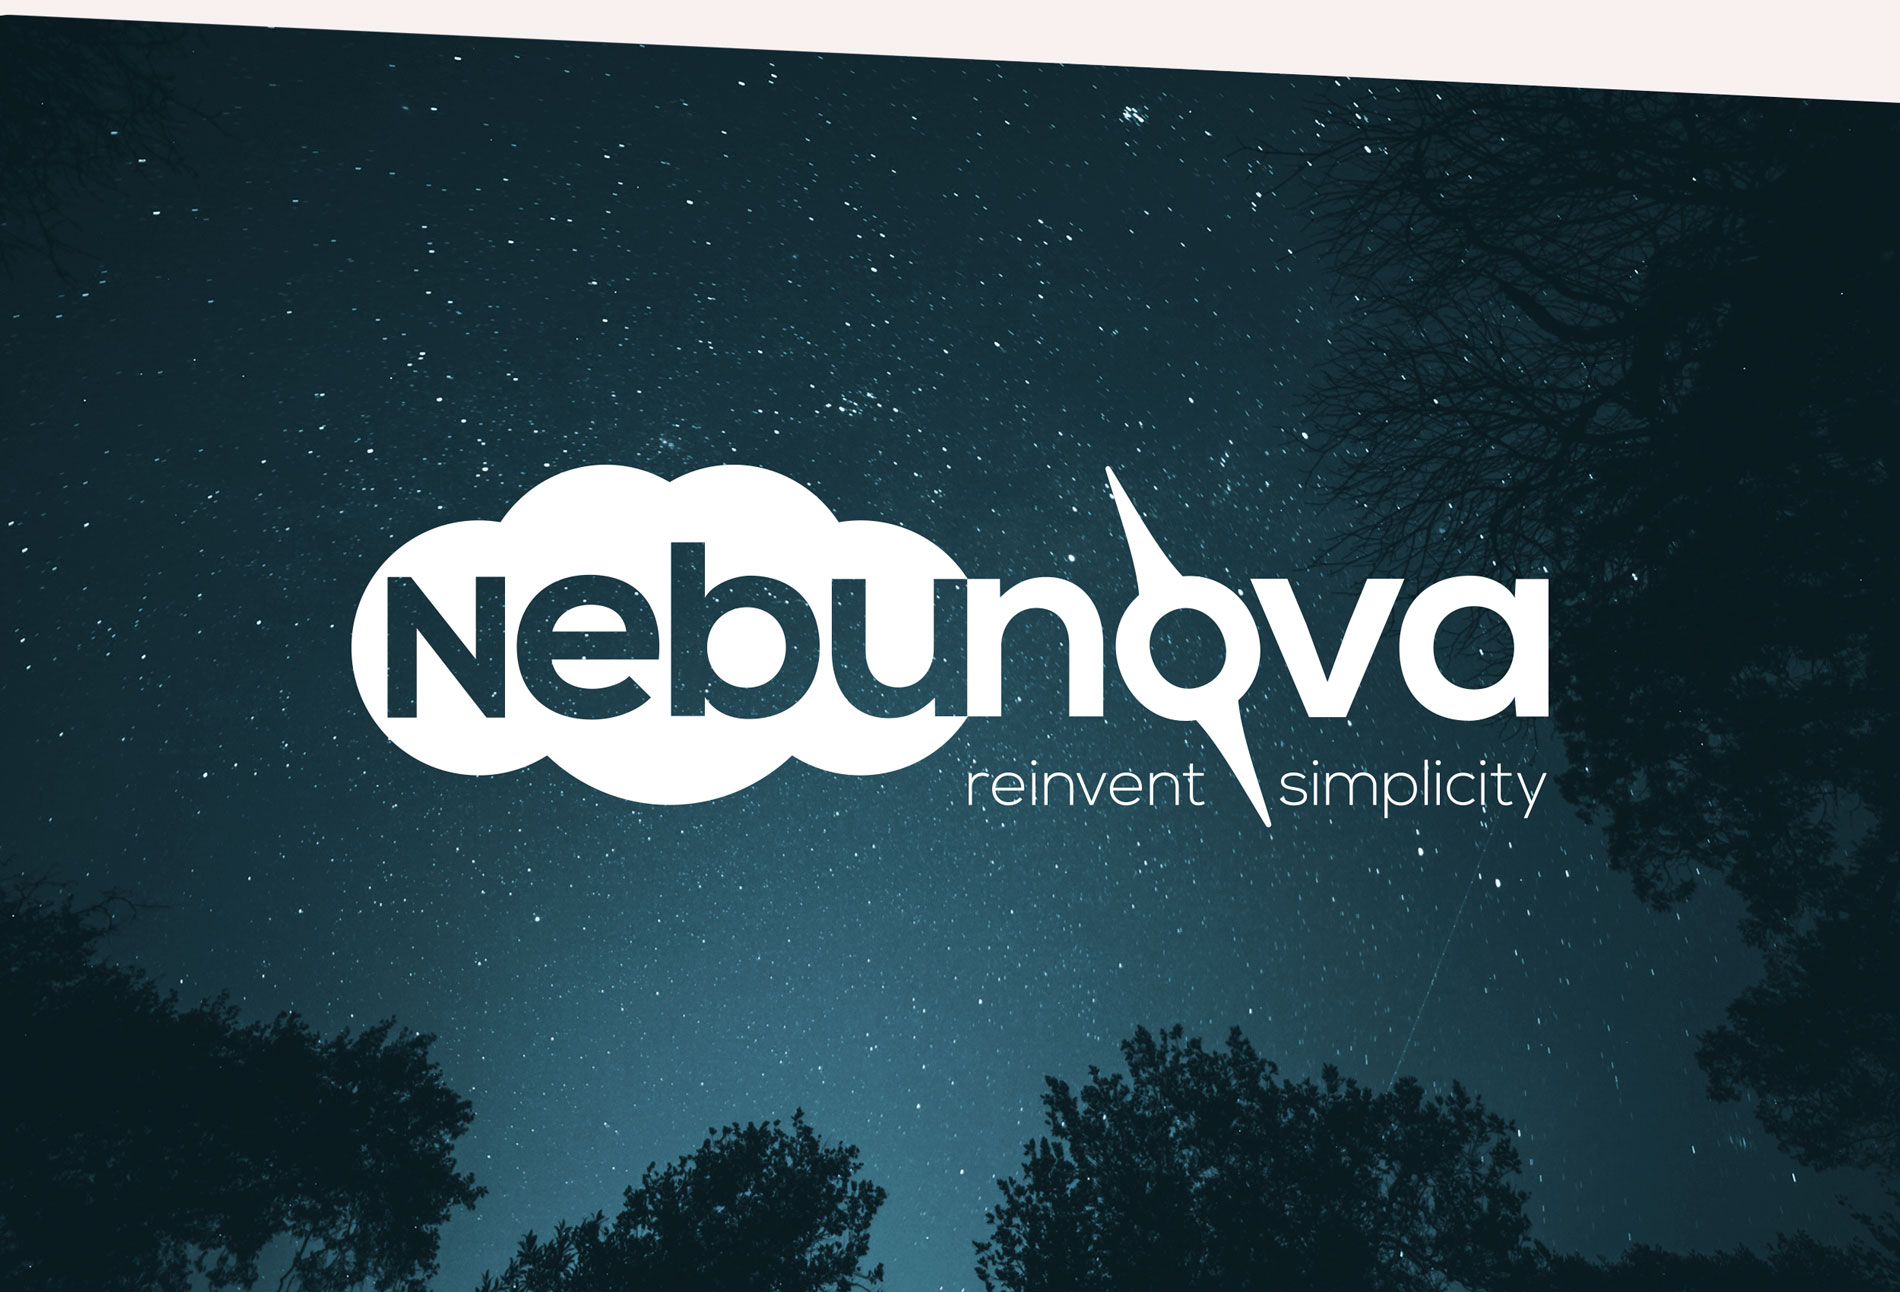 Nebunova logo - design whitstable kent